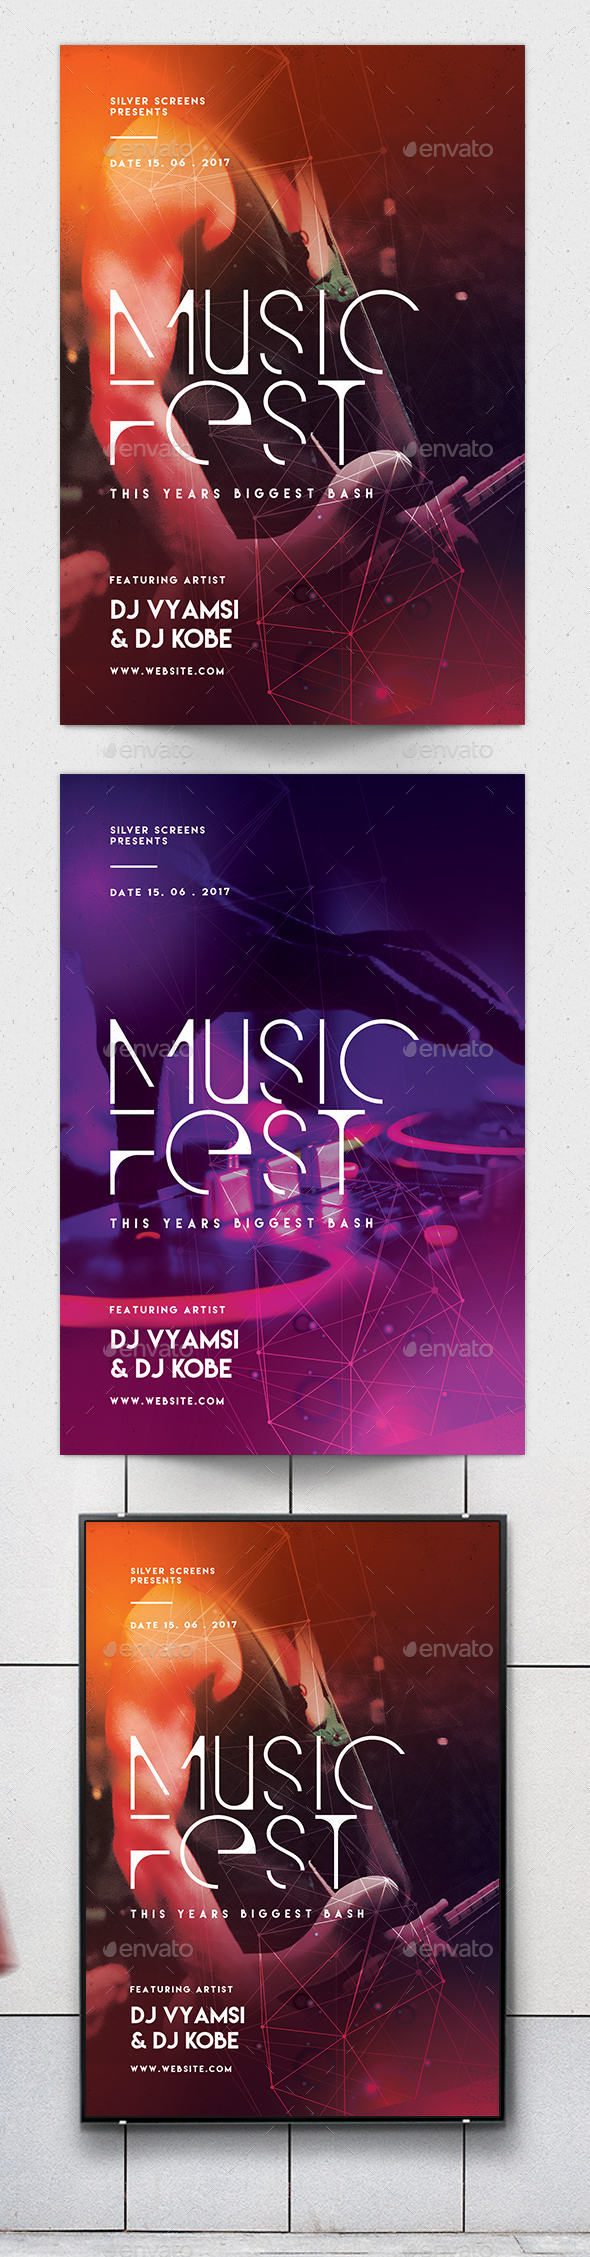 Music Fest Minimal Flyer - Events Flyers